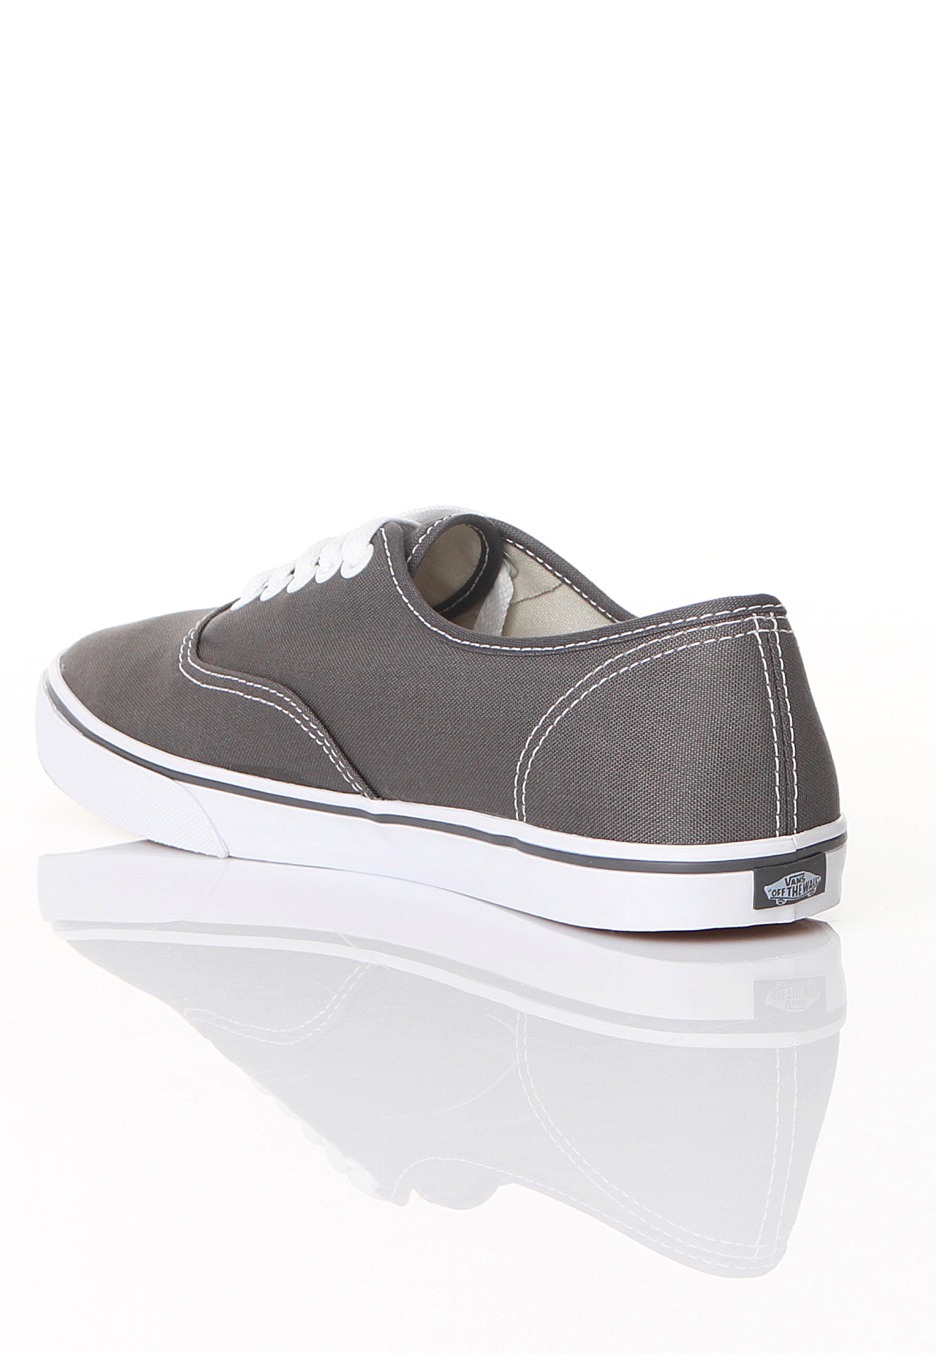 Vans - Authentic Lo Pro Pewter True White - Girl Shoes - Impericon ... beb3c3502b